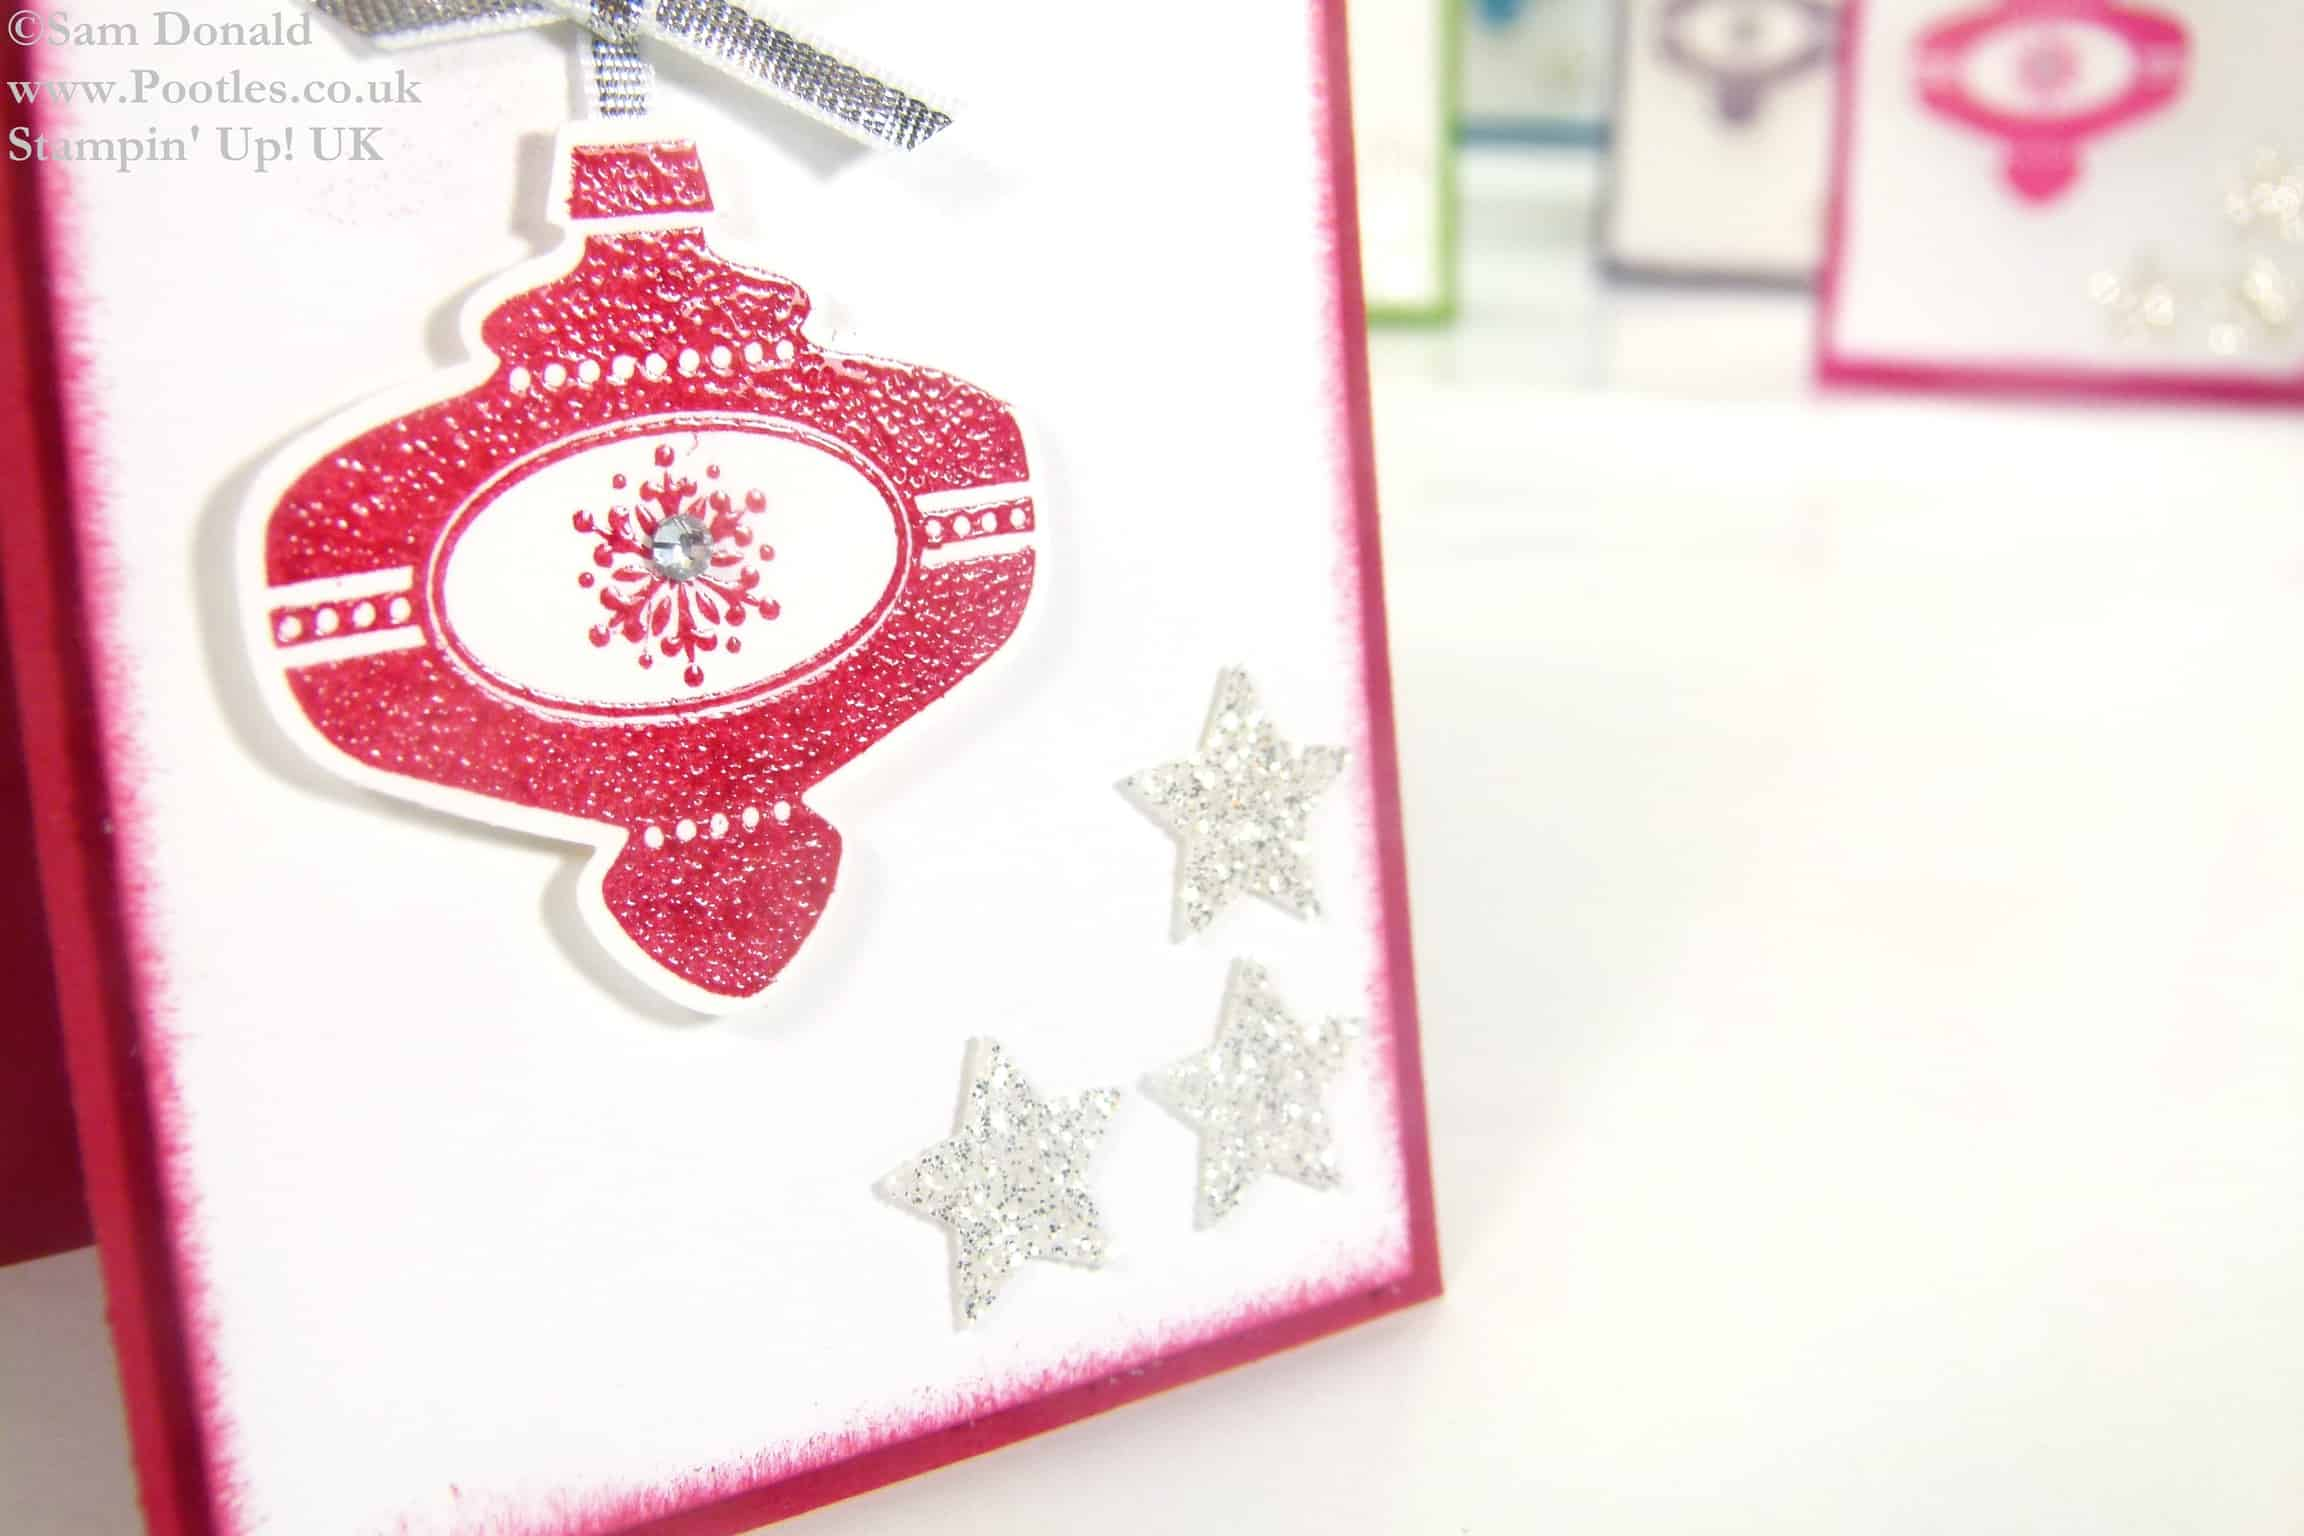 Pootles Stampin Up UK Mini Retro Multicoloured Christmas Collectibles 2